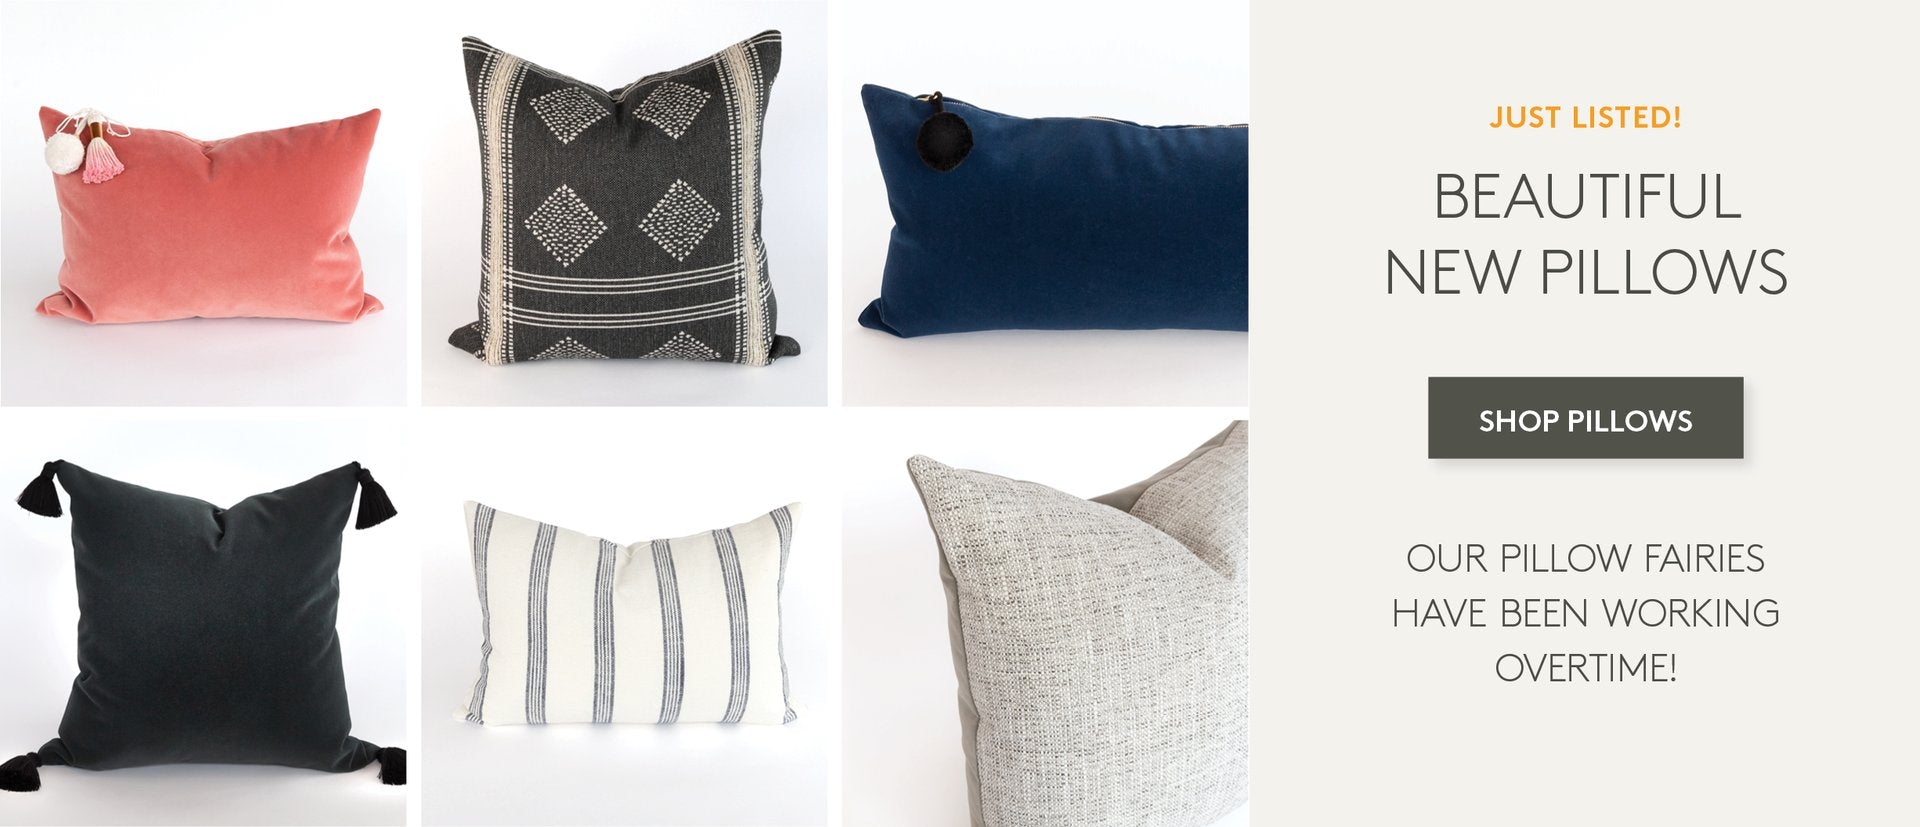 Pillows from Tonic Living